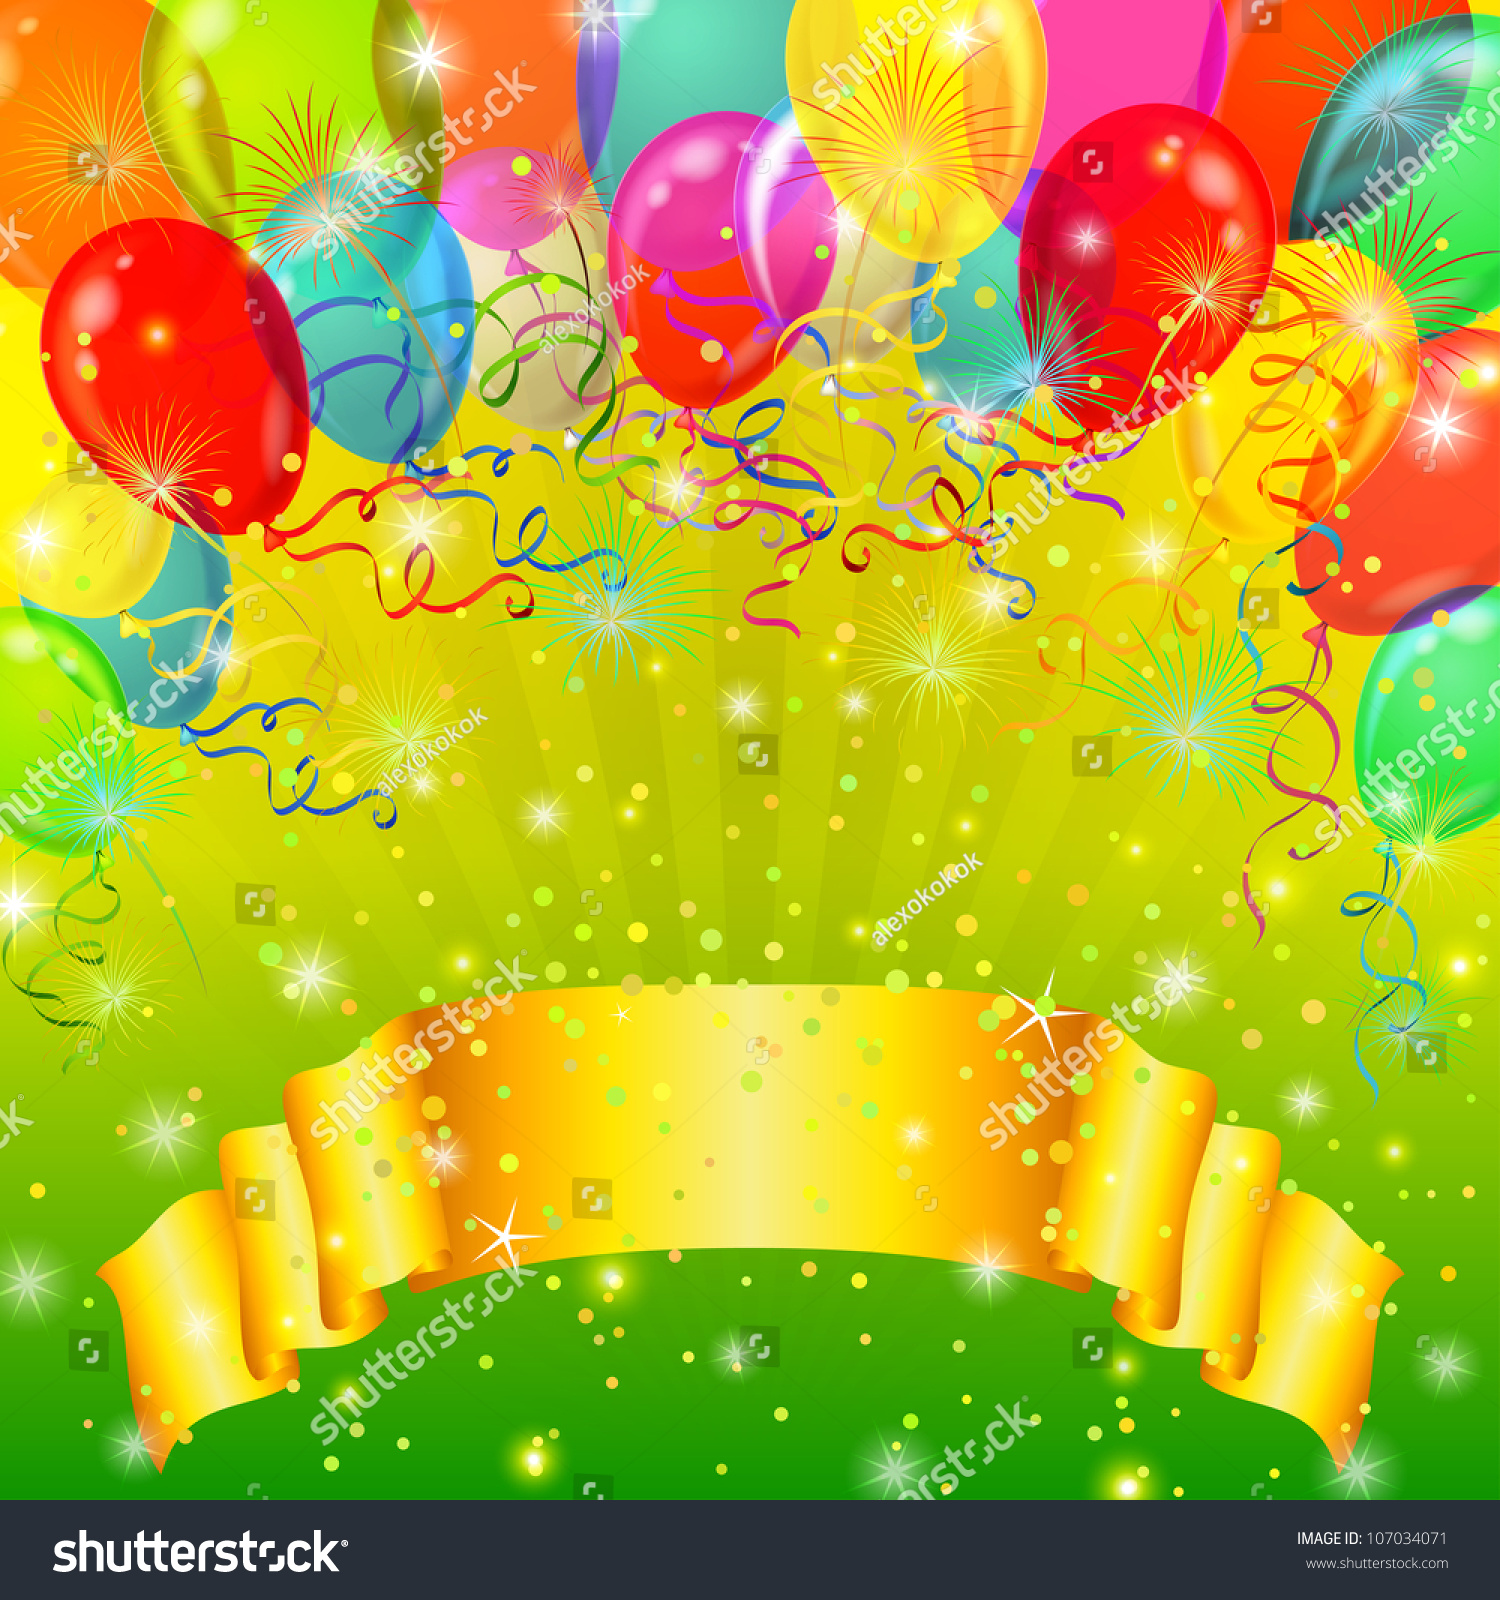 Birthday Balloons Transparent Background Holiday Background Banner Various Color Balloons Stock